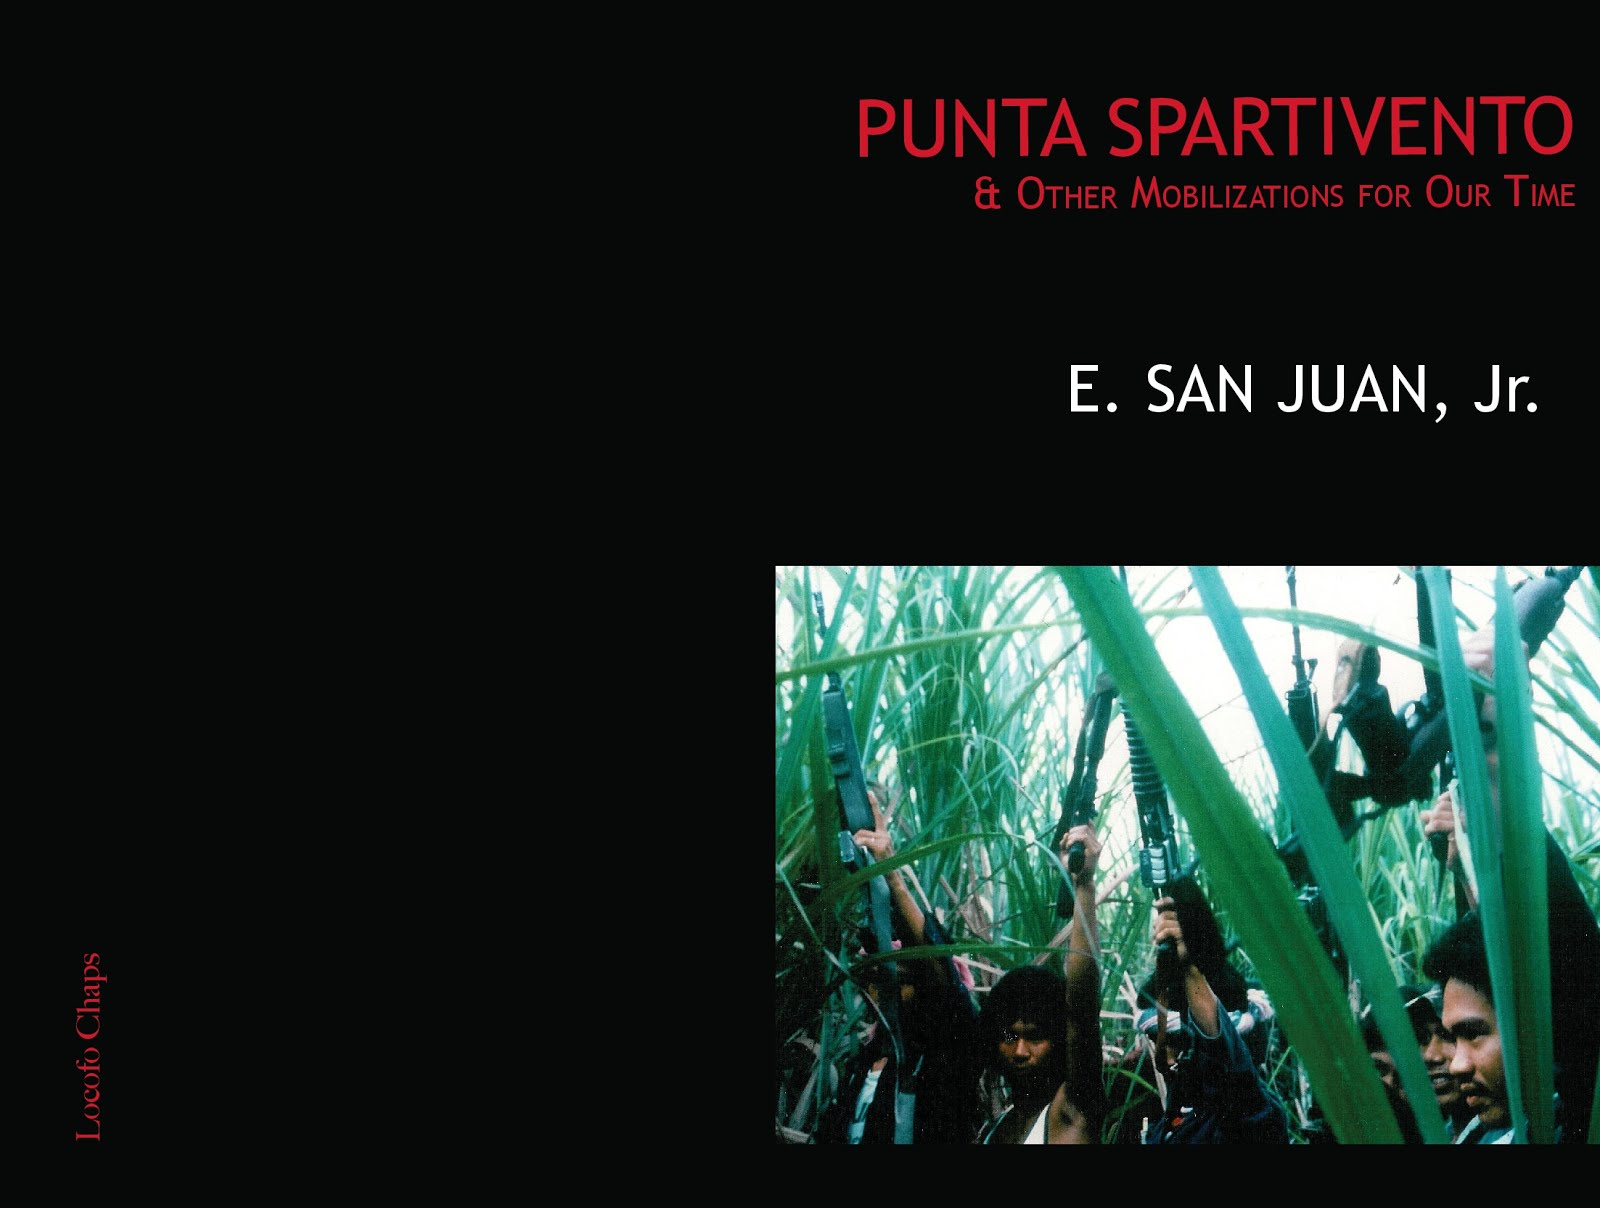 PUNTA SPARTIVENTO & Other Poems